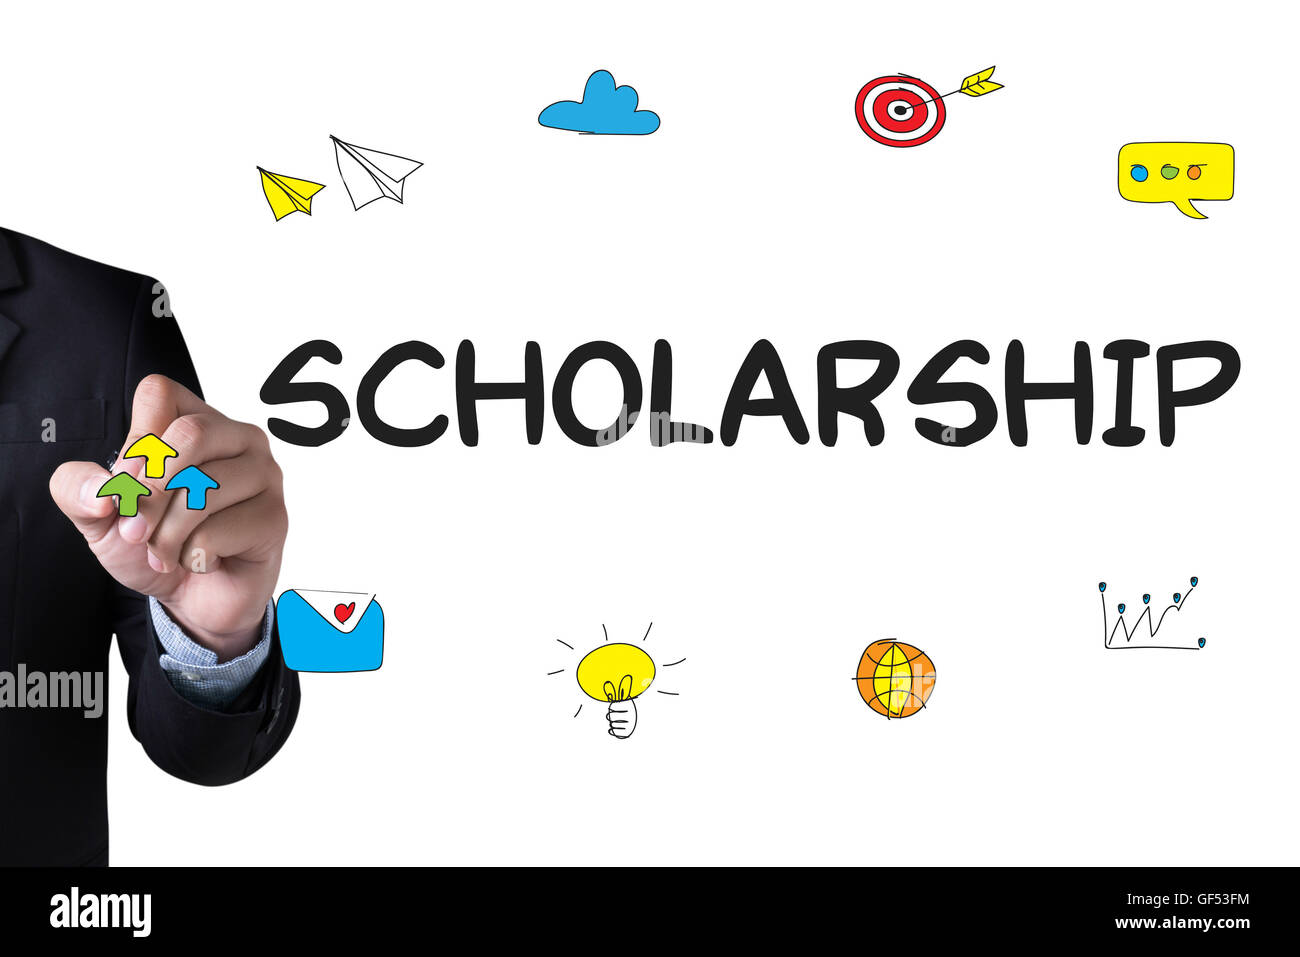 SCHOLARSHIP and Businessman drawing Landing Page on white background - Stock Image